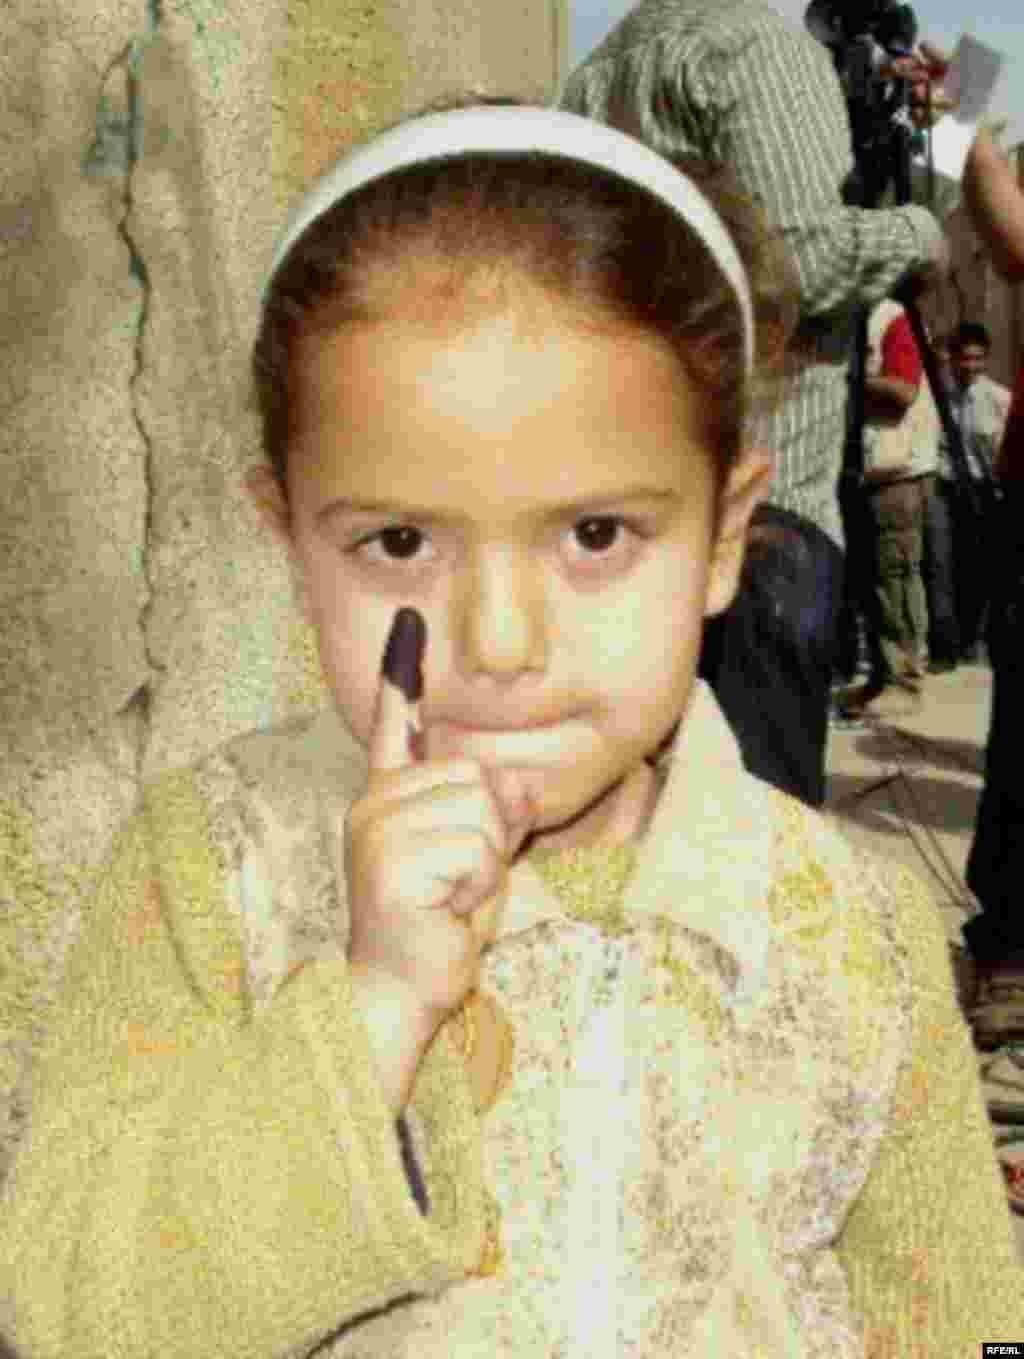 A young Iraqi girl in Baghdad after accompanying her family to their polling station. (Photo: Radio Free Iraq)